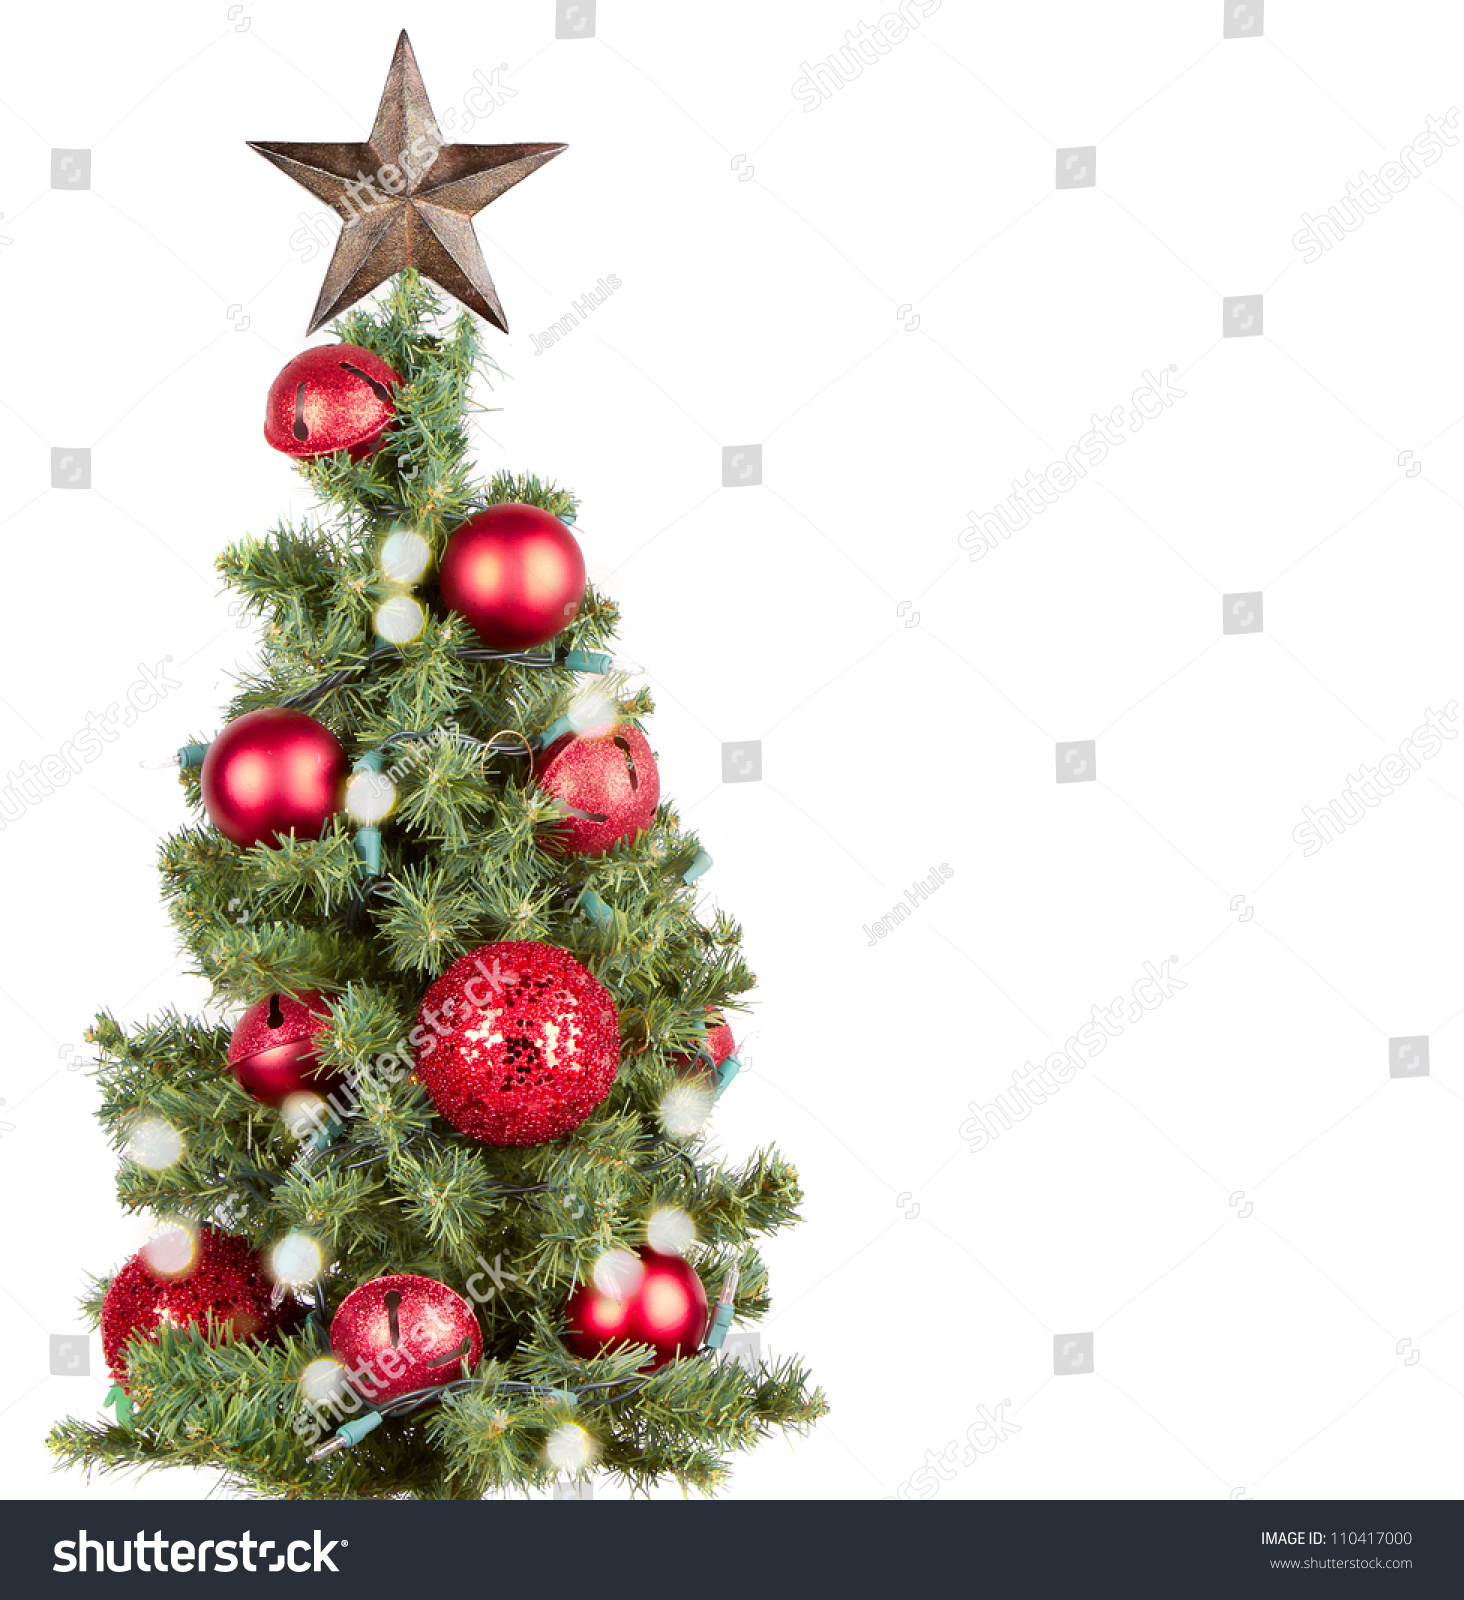 Christmas tree with red ornaments and star isolated on for White tree red ornaments